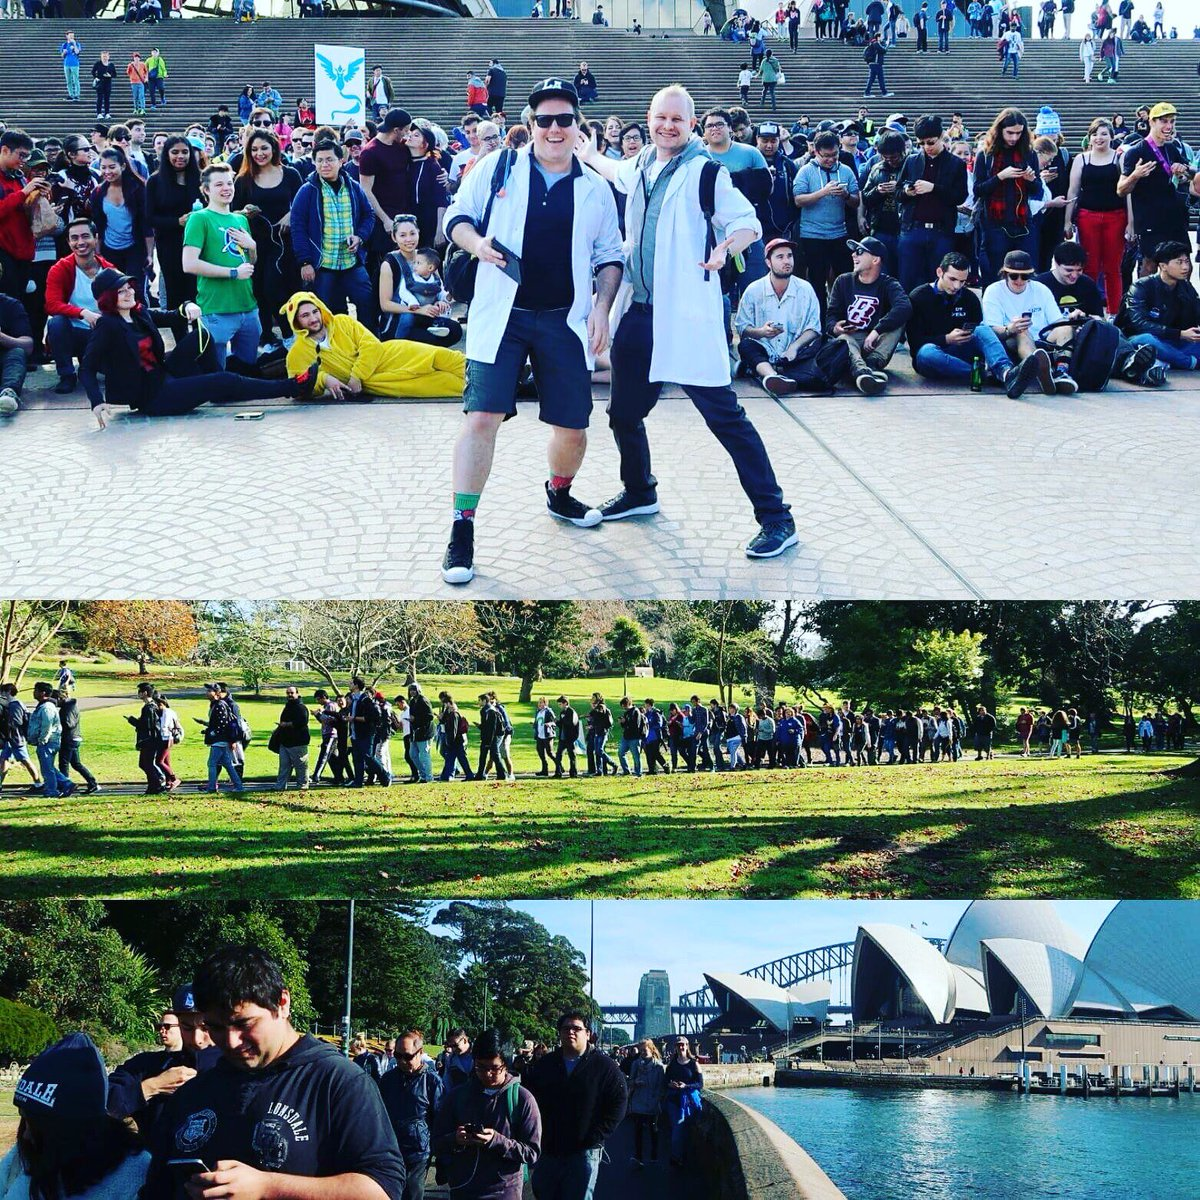 So yesterday me and @jiggsy we went for a walk in Sydney with a few friends... #PokeGOwalk (photo by @raejohnston) https://t.co/kgnd0Bbhz8